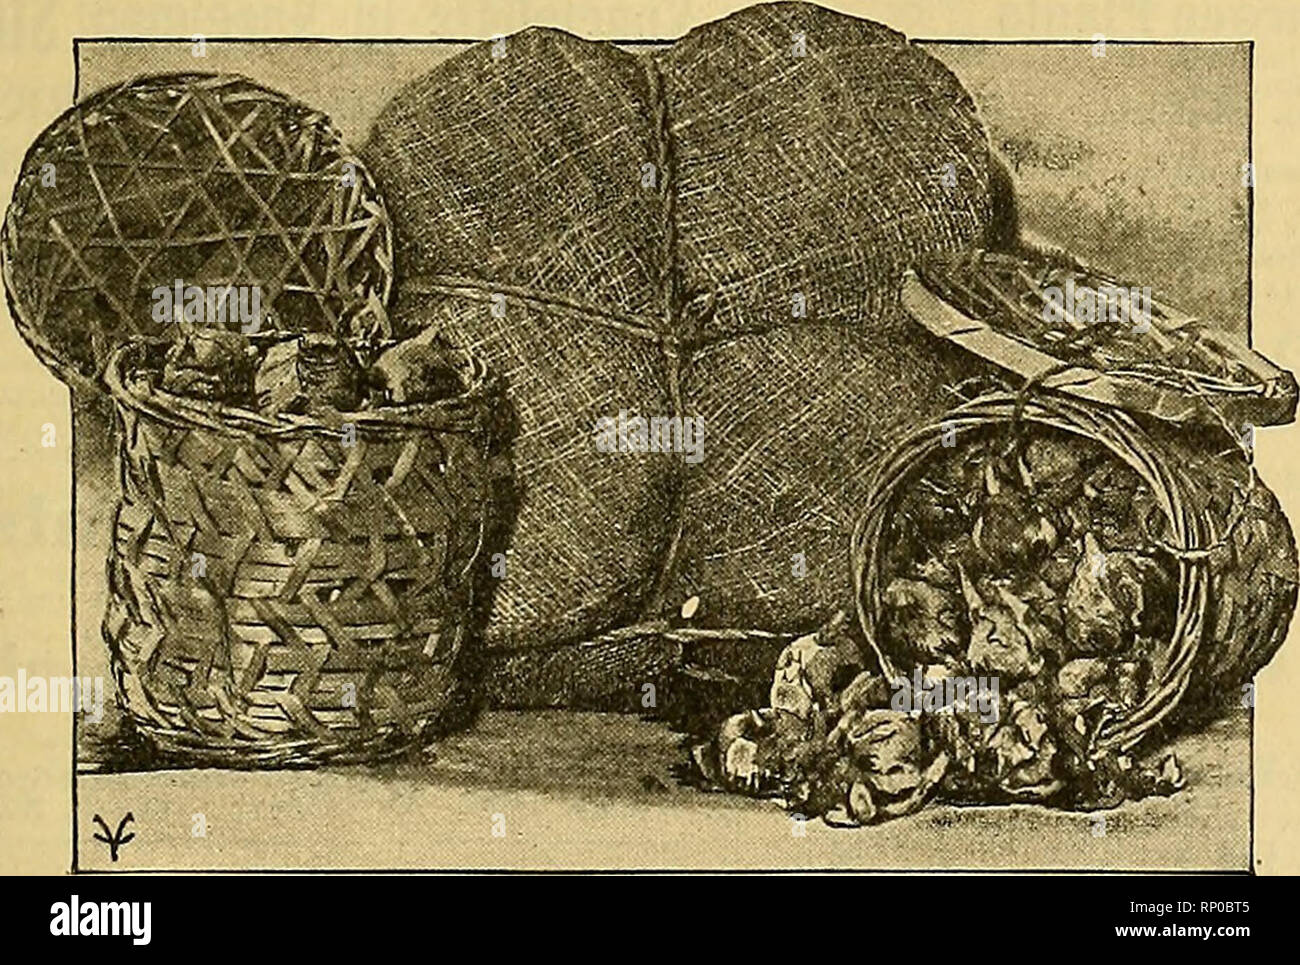 """. The American florist : a weekly journal for the trade. Floriculture; Florists. tgn- The American Florist. 475 Closing Out Sale of Choice Young Rose Plants, 1% inch pots. Cecile Brunner, per 100, $4.00 . . per 1000, $30.00 Grafted KiUarney Brilliant """" 50.00 Grafted Richmond ...... """" 50 00 Own root Richmond . . . """" 30.00 Own root Shawyer """" 30.00 CLOSING OLT SALE OF Extra Heavy Field Carnation Plants Matchless, White Enchantress and White Wonder, very choice, at $55.00 per 1000. 500 Mrs. Ward, 1000 Alice and a few hundred of deep pink fancy varieties. Bassett & Washburn  - Stock Image"""